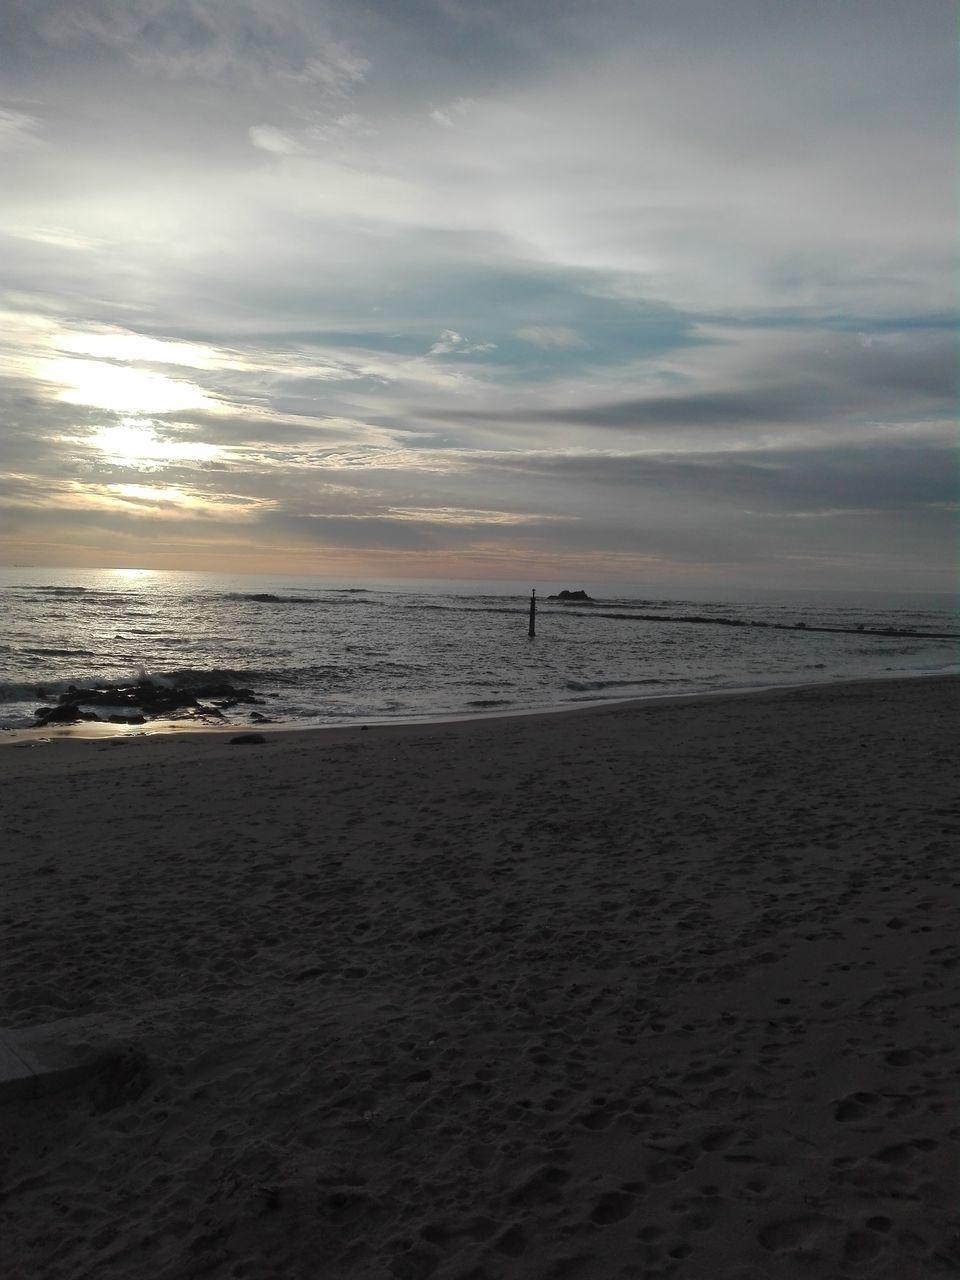 sea, beach, sand, water, horizon over water, sky, scenics, beauty in nature, nature, tranquility, cloud - sky, tranquil scene, sunset, idyllic, outdoors, vacations, wave, no people, day